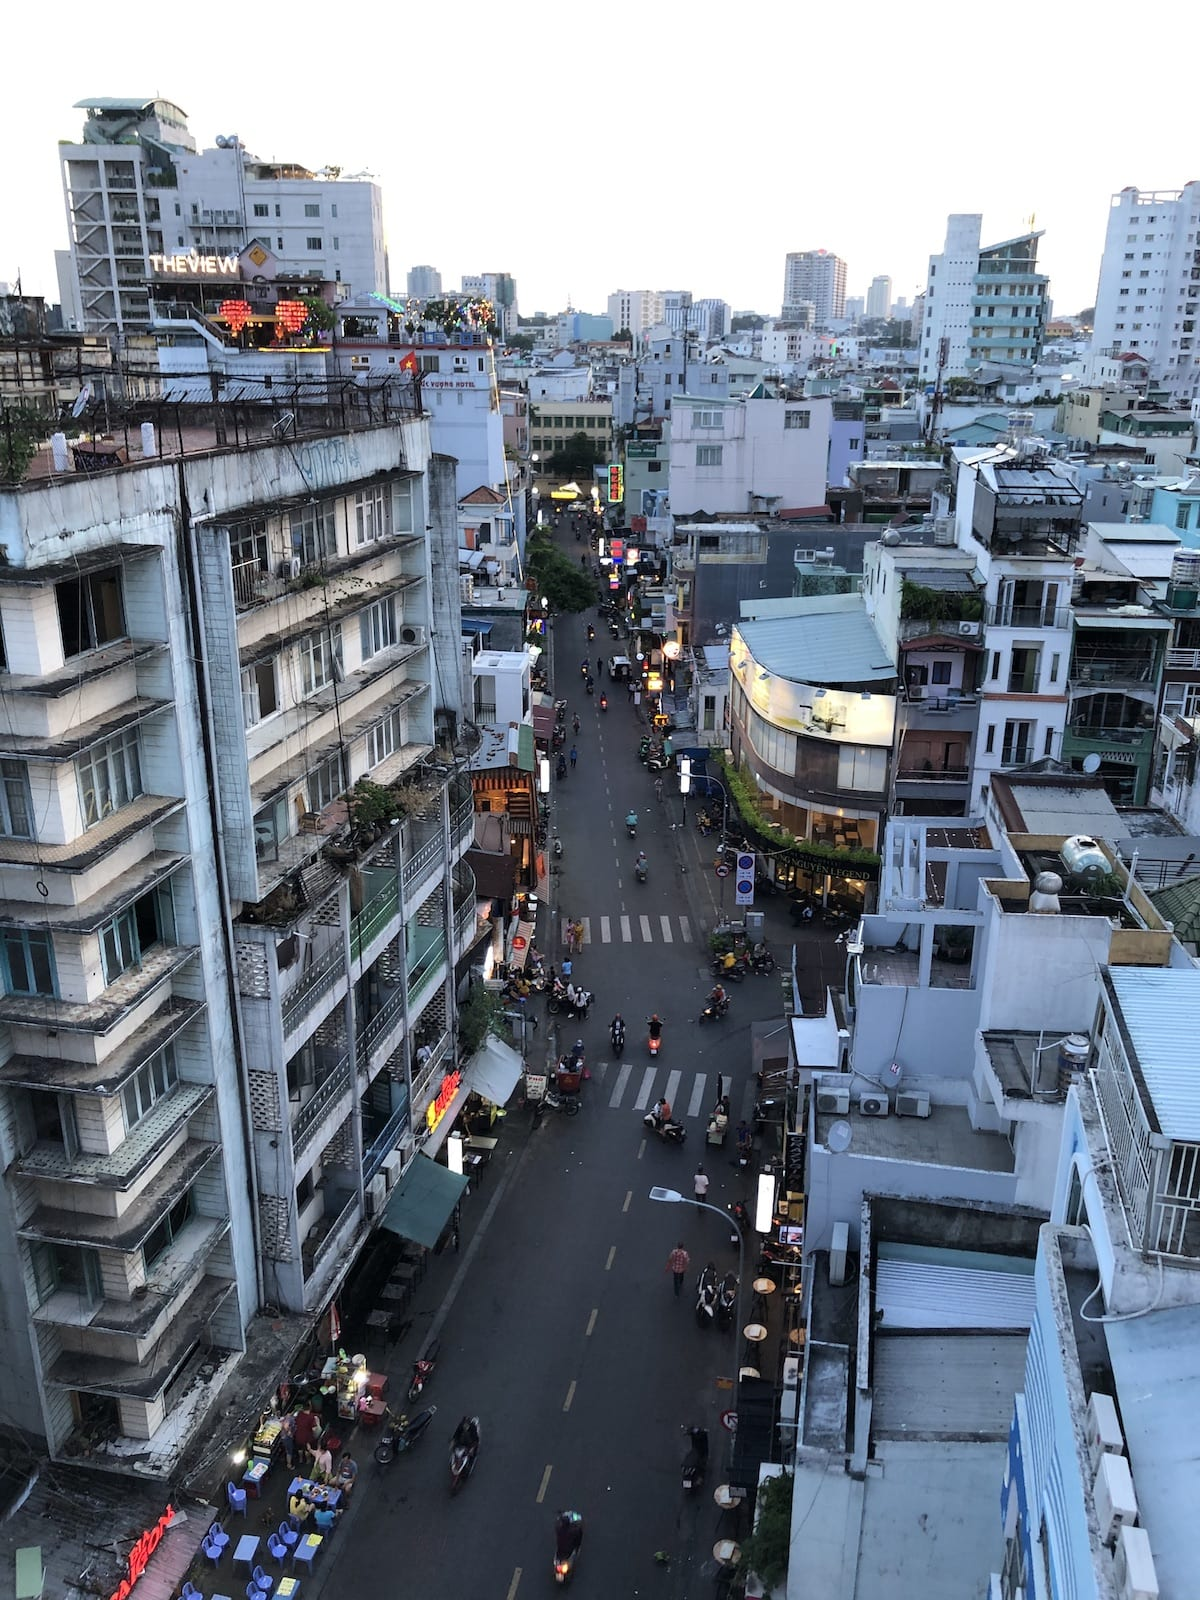 Image looking down at Bui Vien Street in Ho Chi Minh City, Vietnam